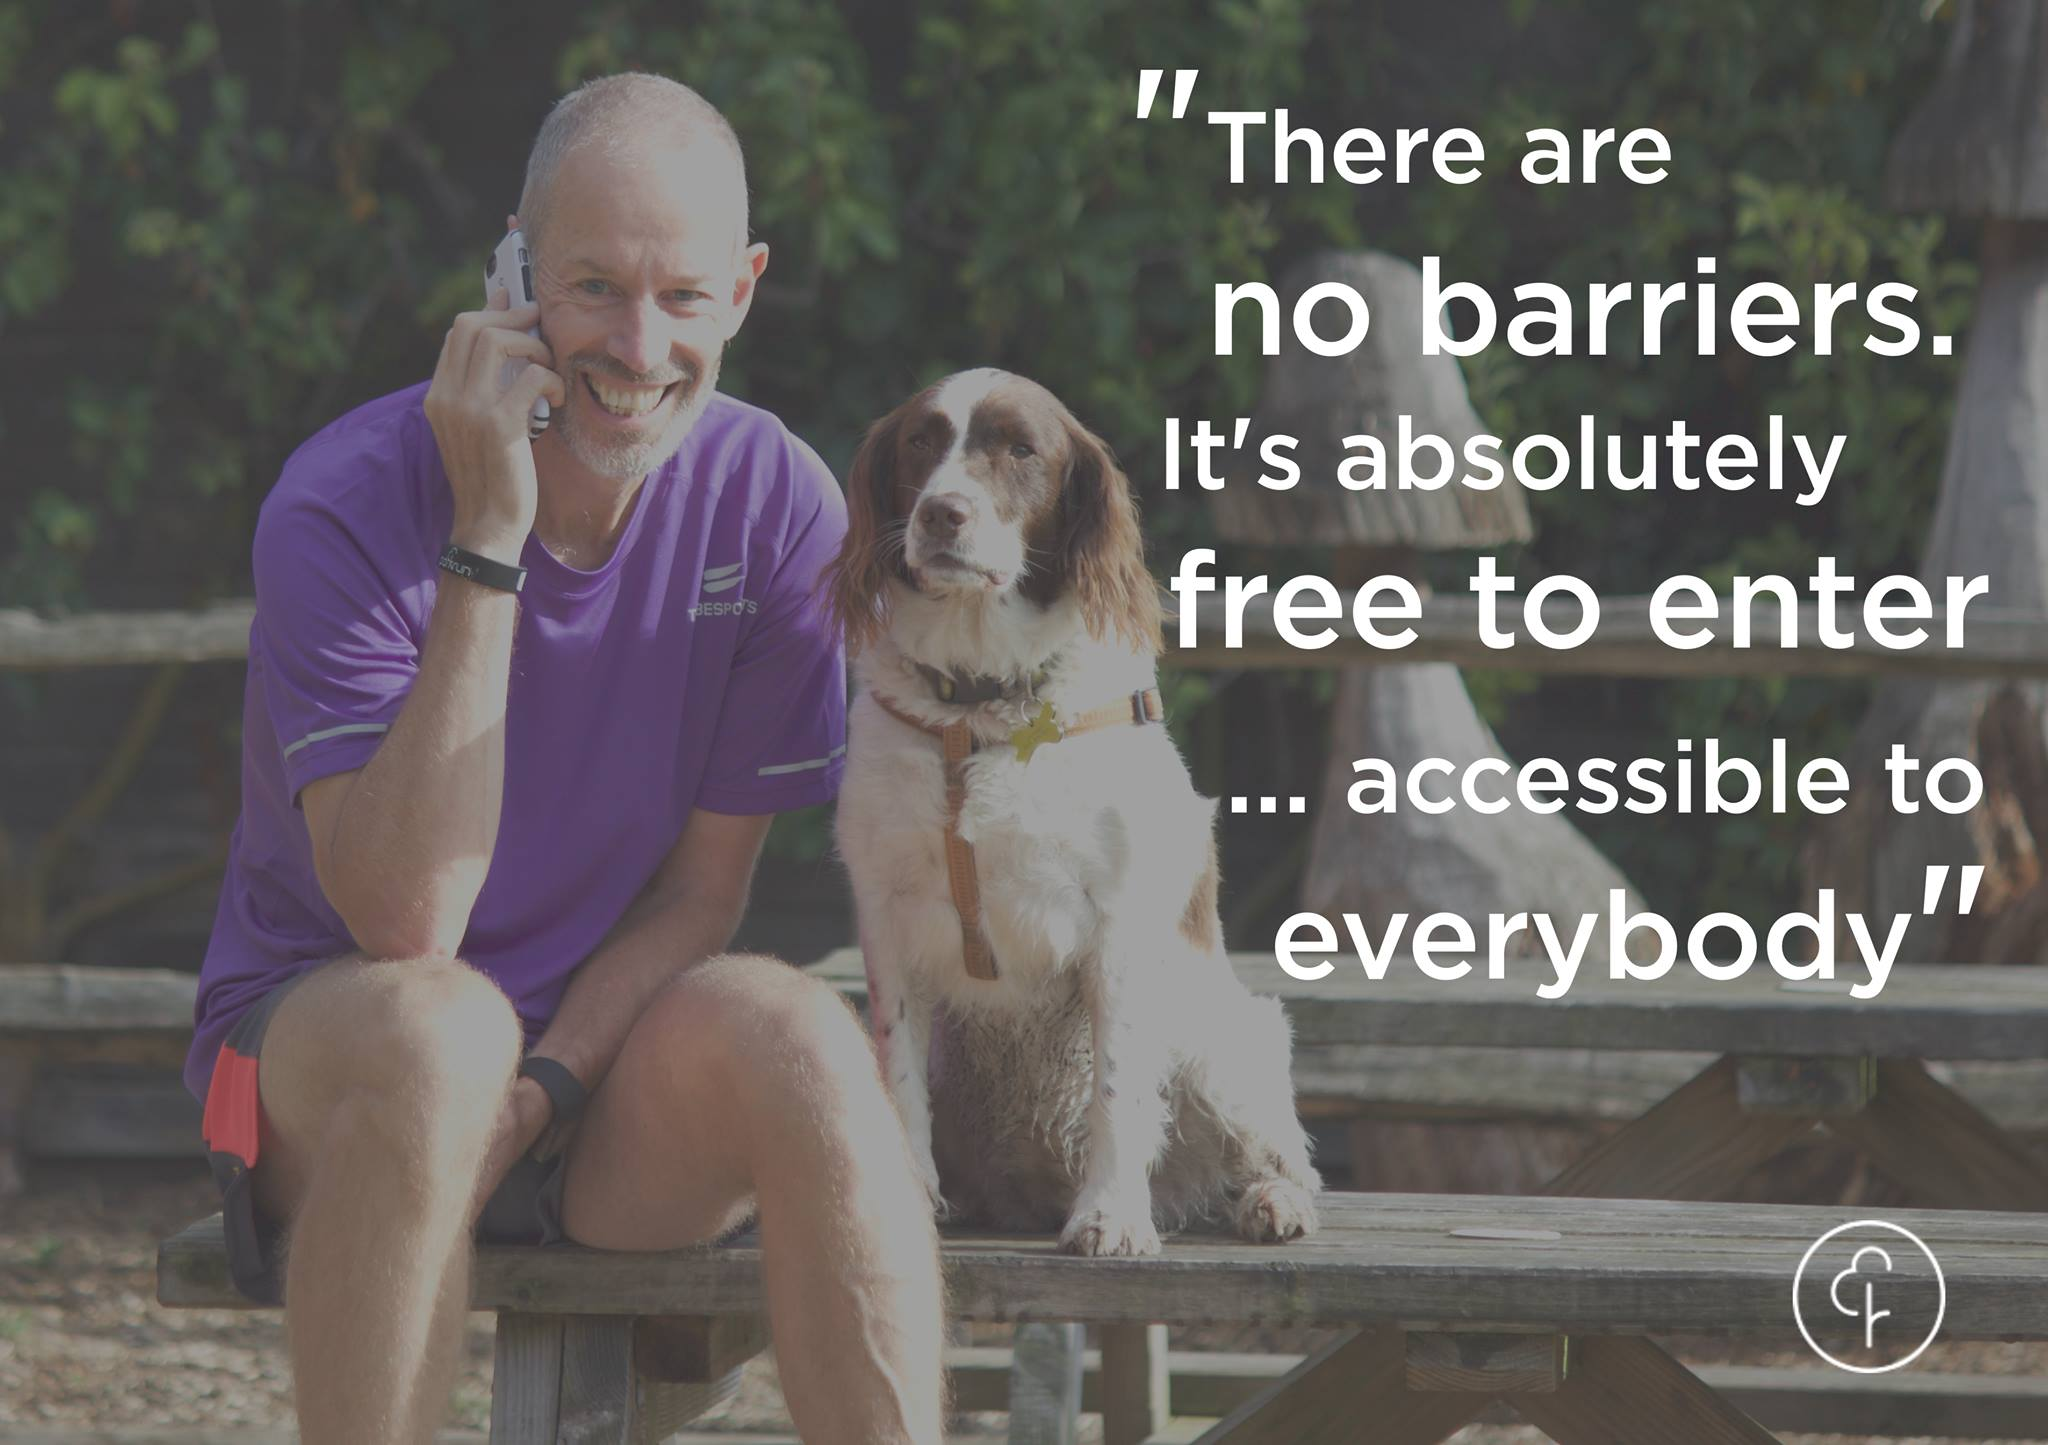 parkrun - there are no barriers, it's absolutely free to enter